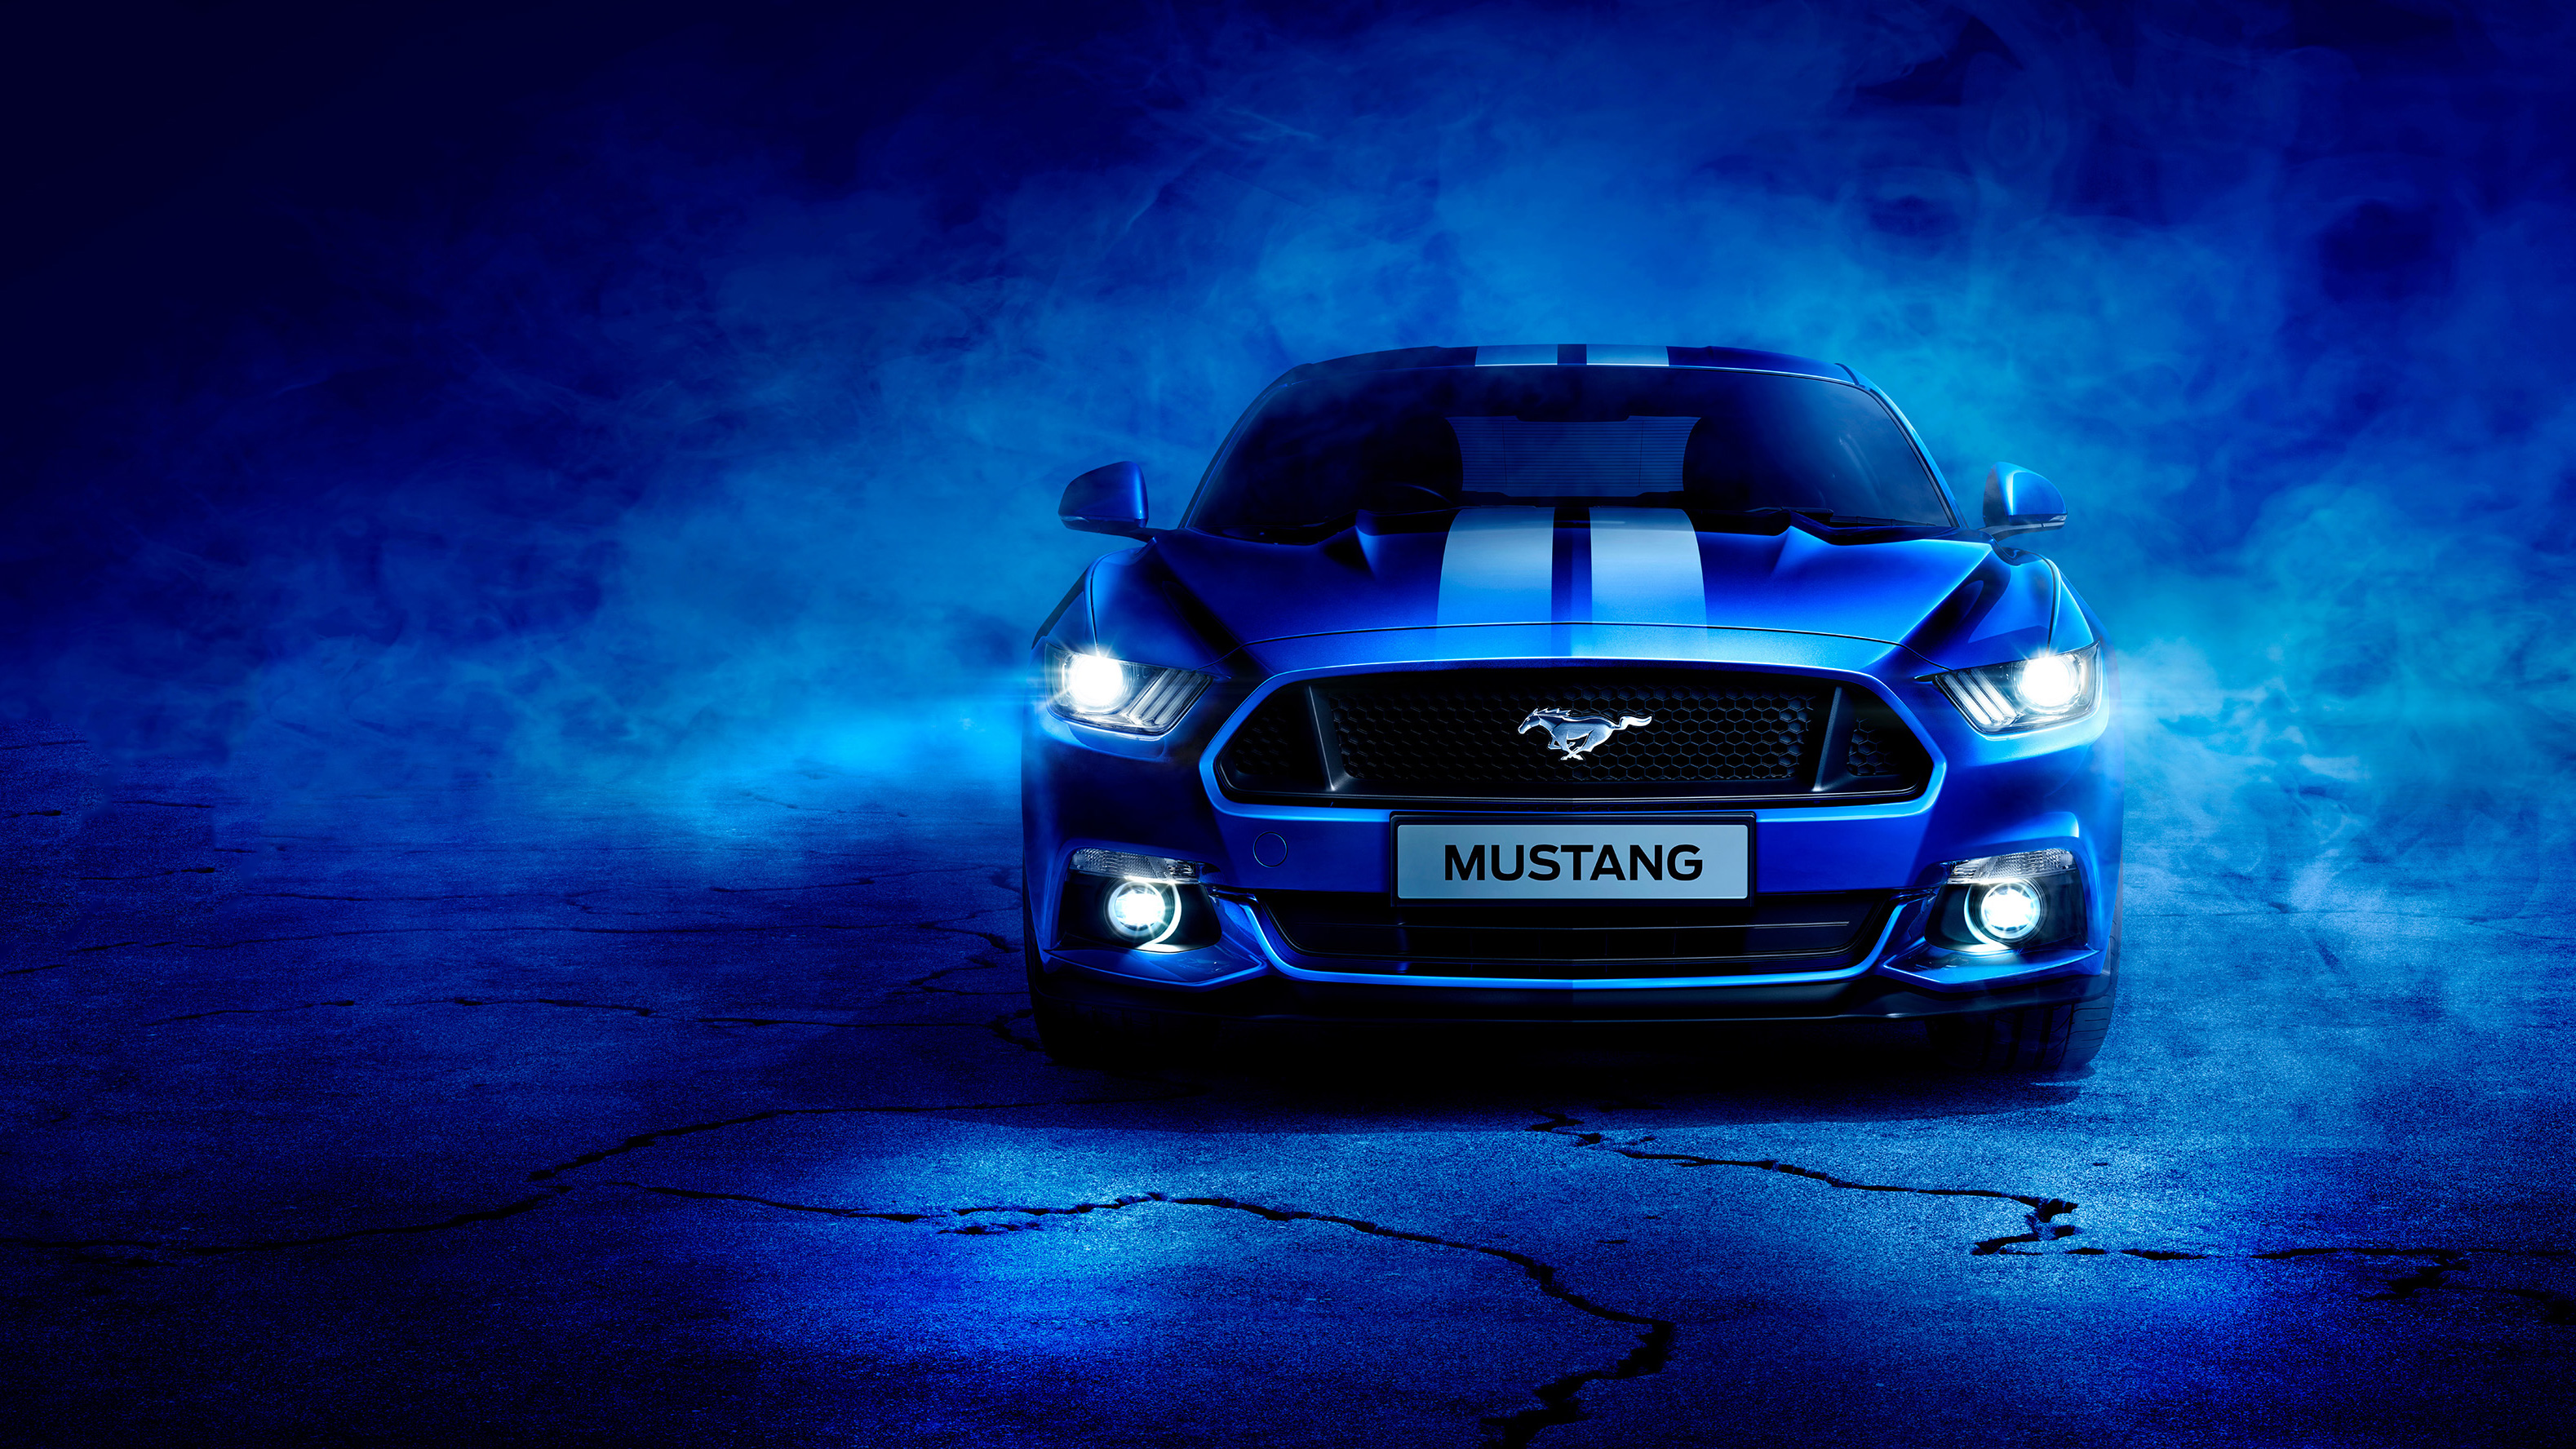 Blue ford mustang hd cars 4k wallpapers images - Cars hd wallpapers for laptop ...